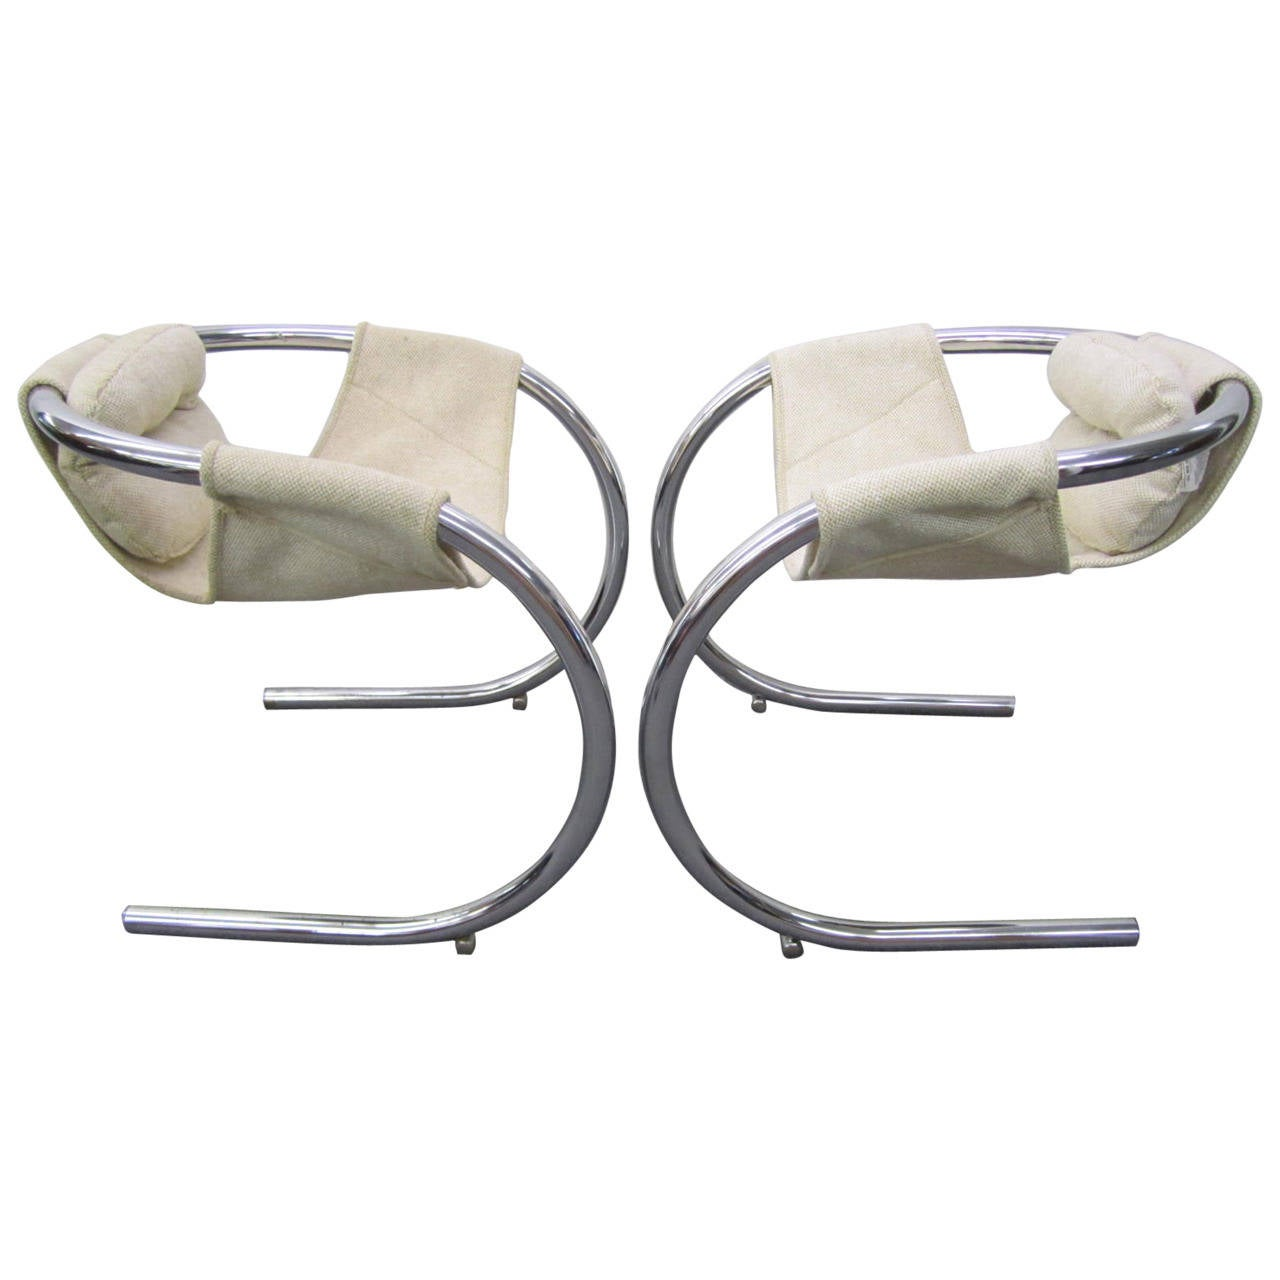 Pair of Mid-Century Modern Chrome Chairs by Bryon Botker for Landes